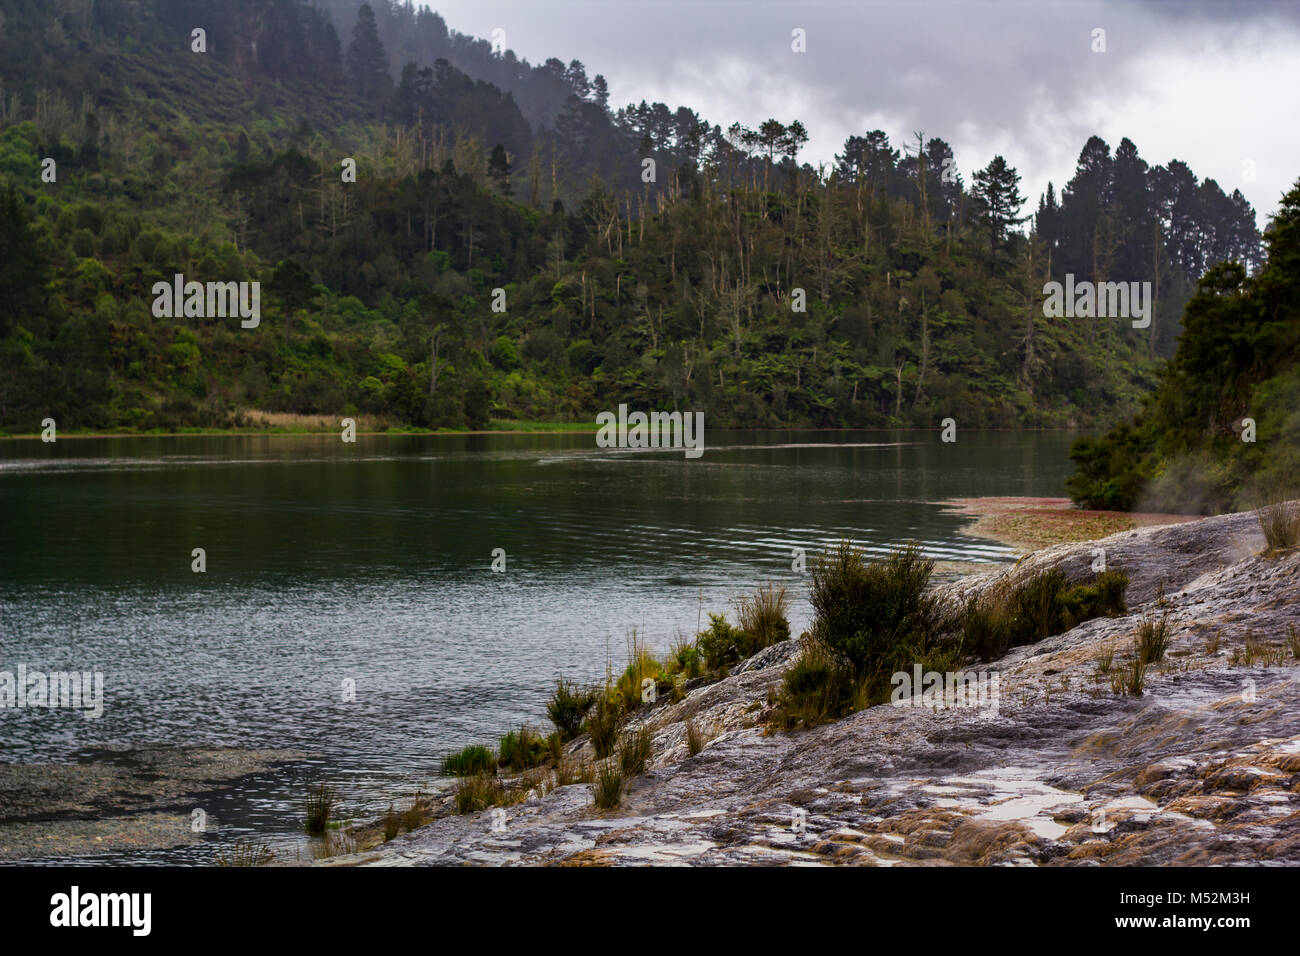 Magnificent landscape of Waikato river in New Zealand - Stock Image